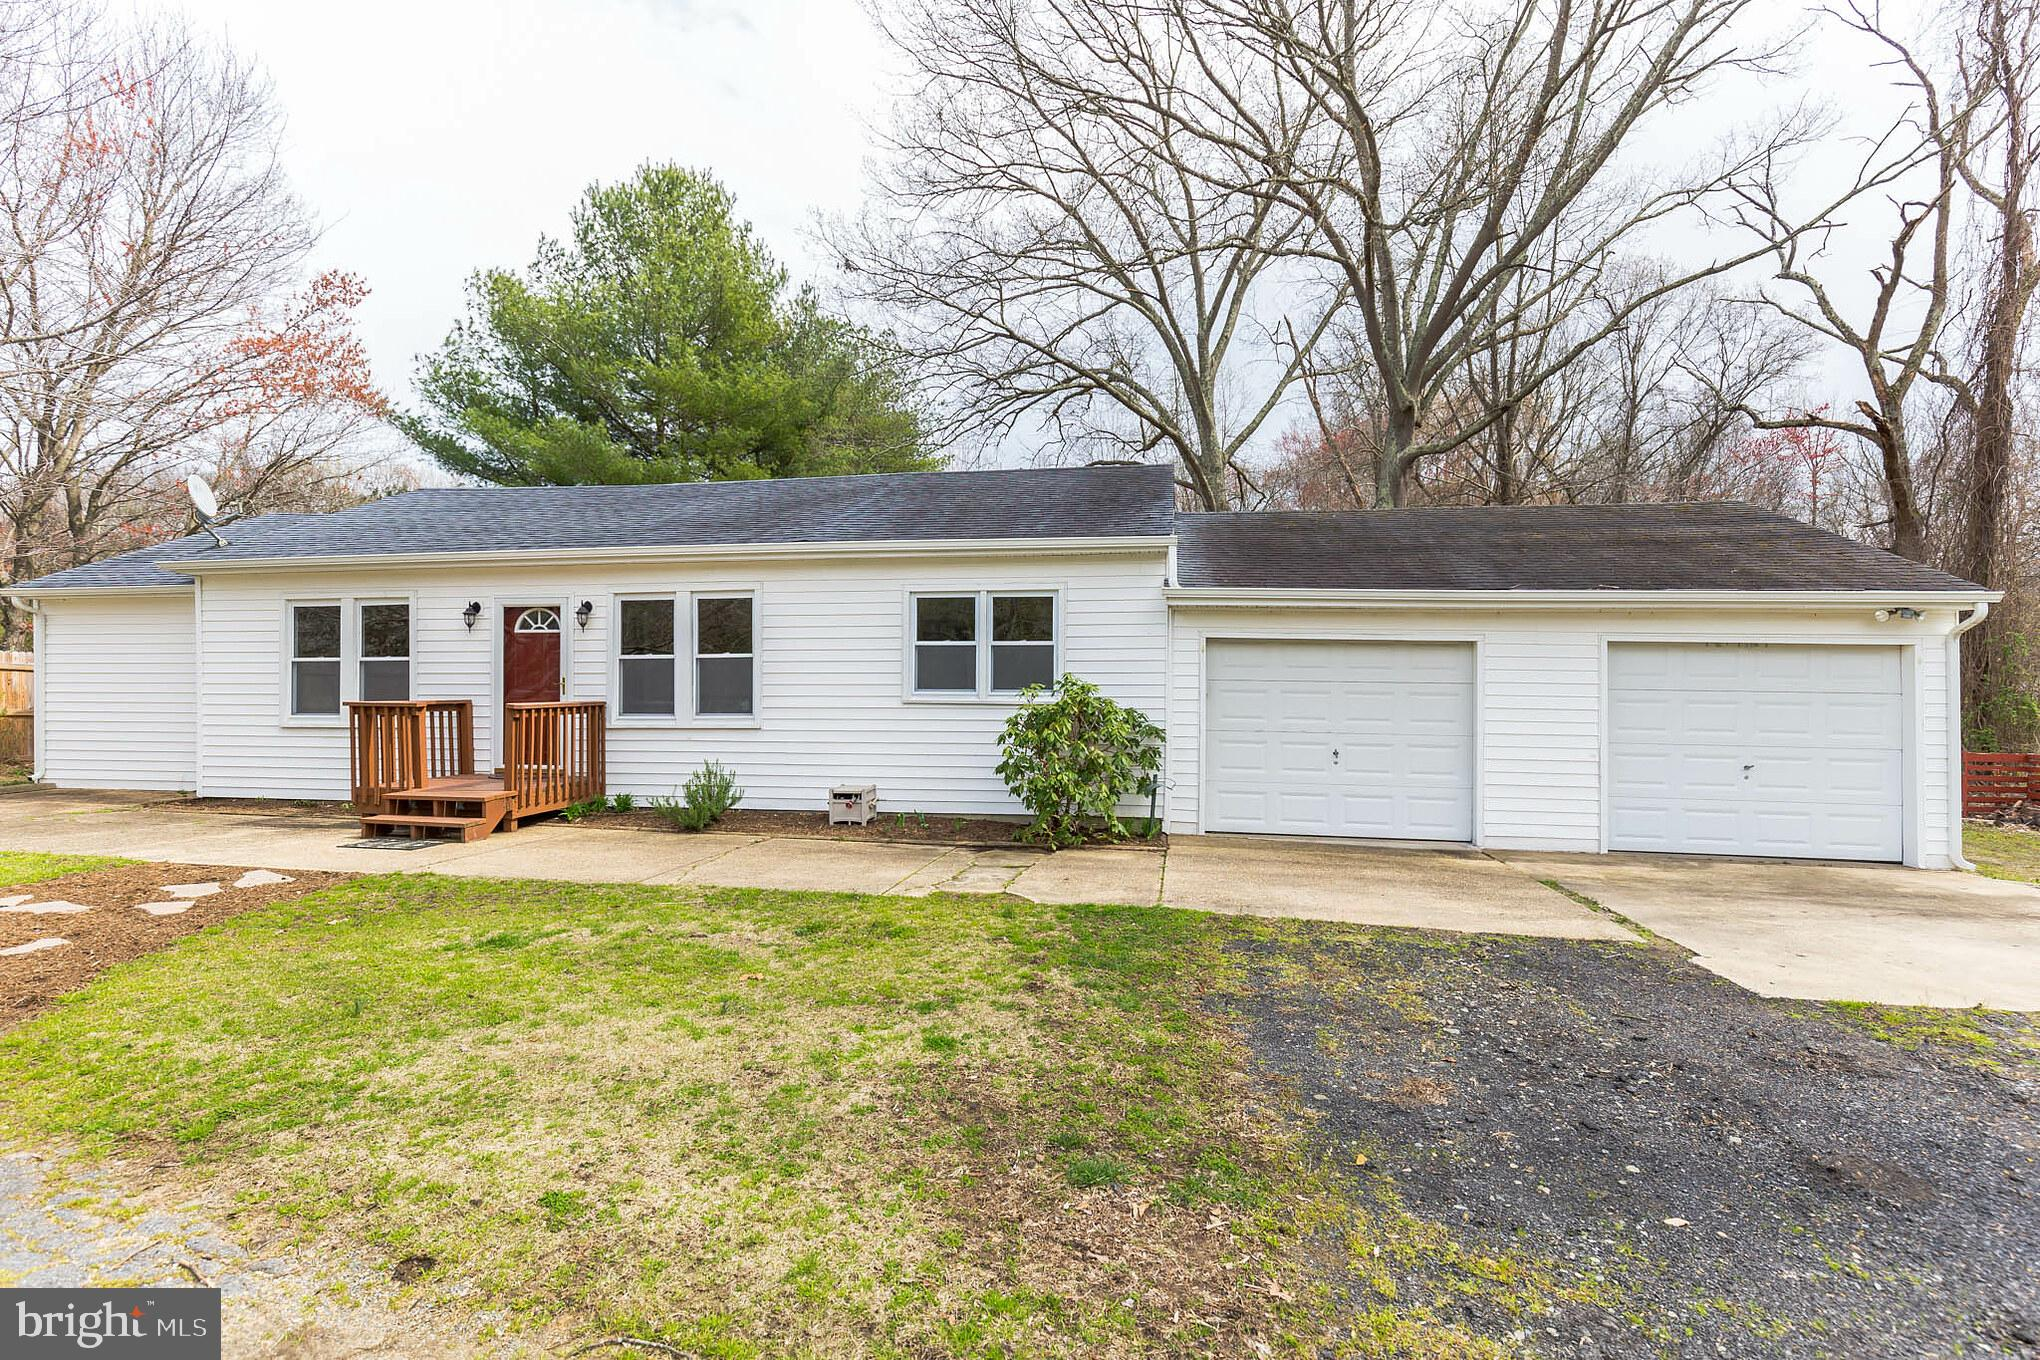 This beautiful rambler in Huntingtown is located between Joint Base Andrews and PAX River Base.  It